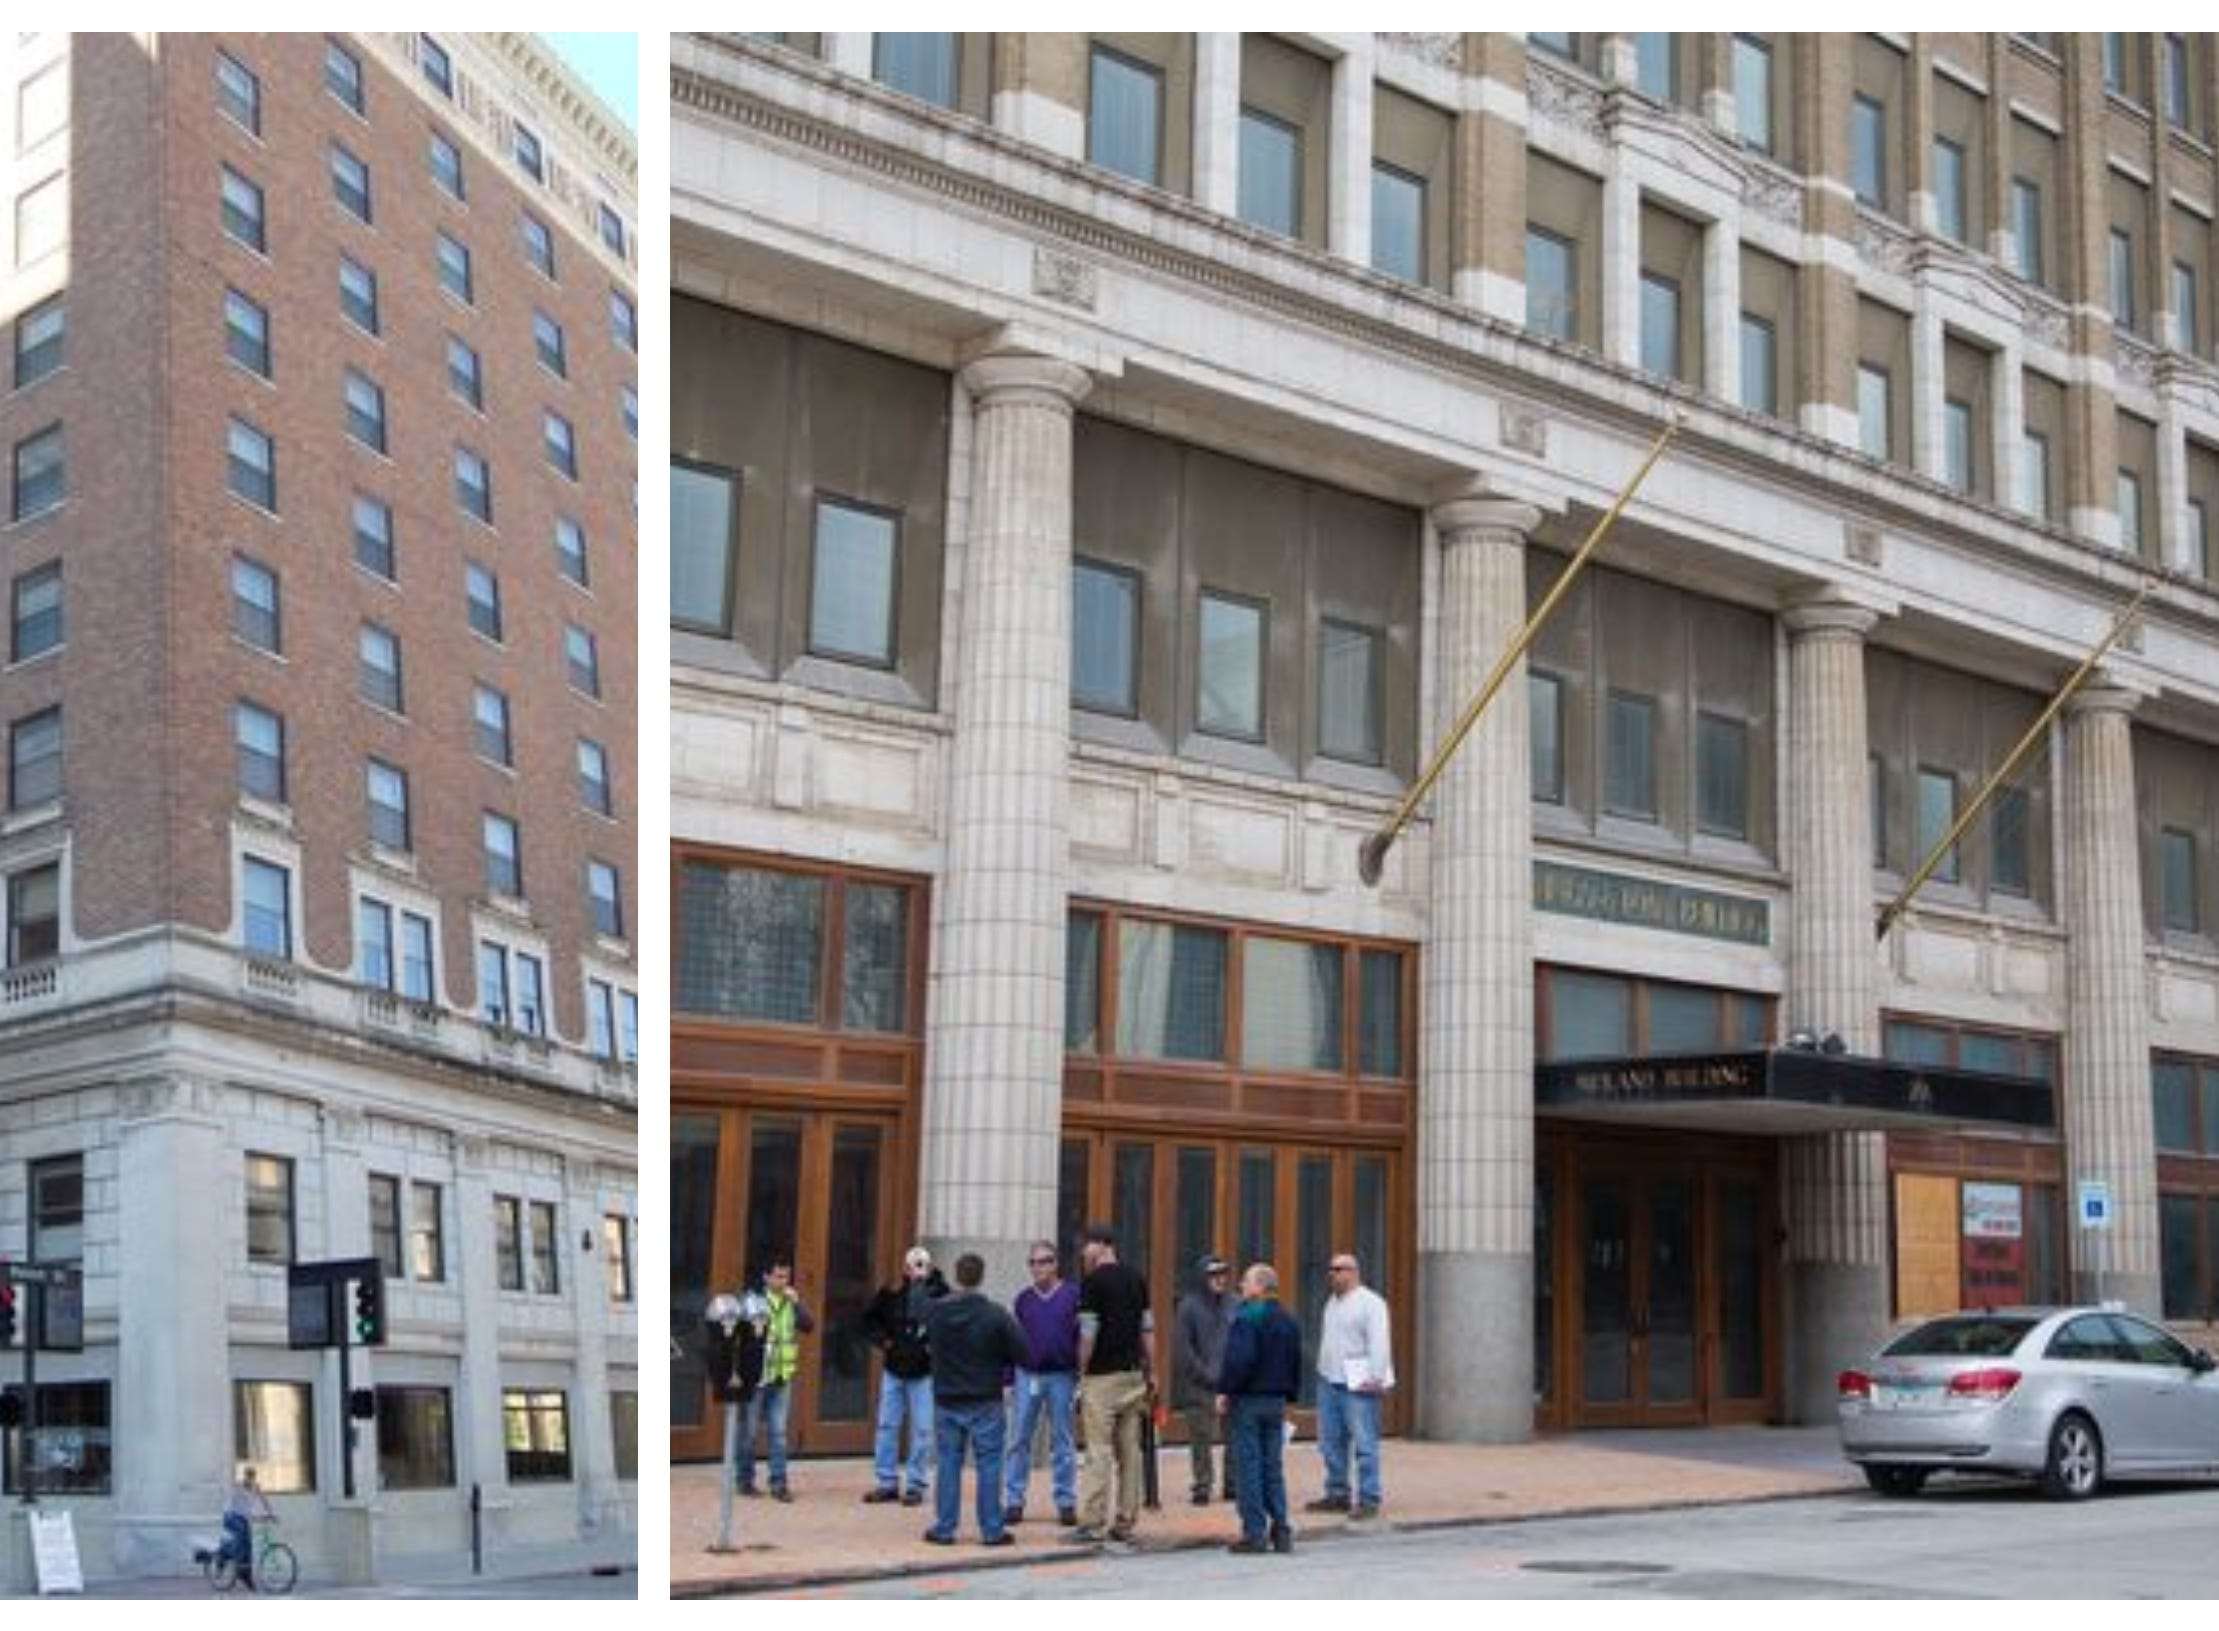 9. High-end boutique hotels are expected to open downtown in 2019. Hotel Fort Des Moines (left) and the Midland Building (right) are both undergoing historic conversions.